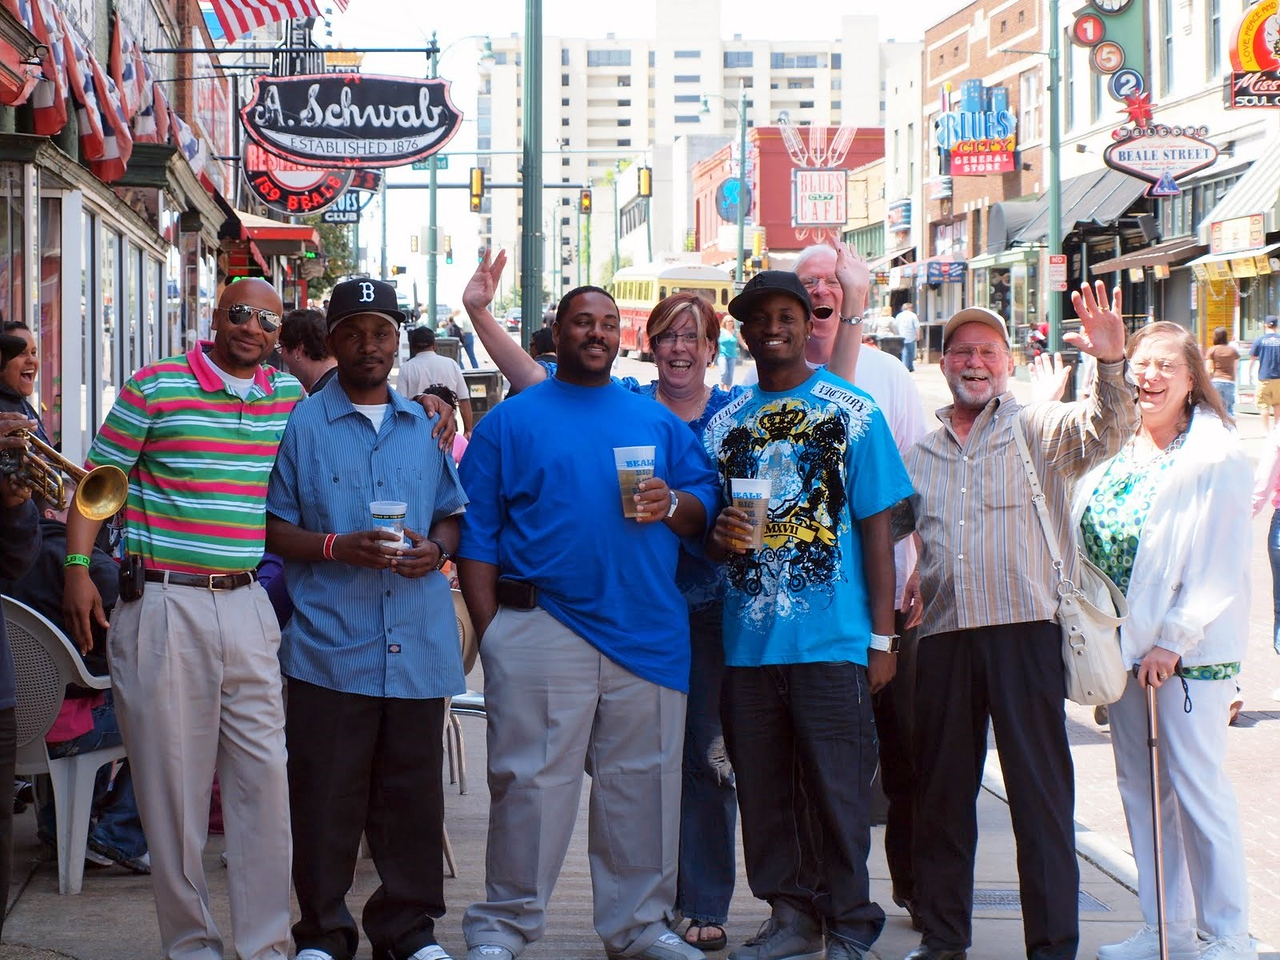 Meeting some new friends on Beale Street